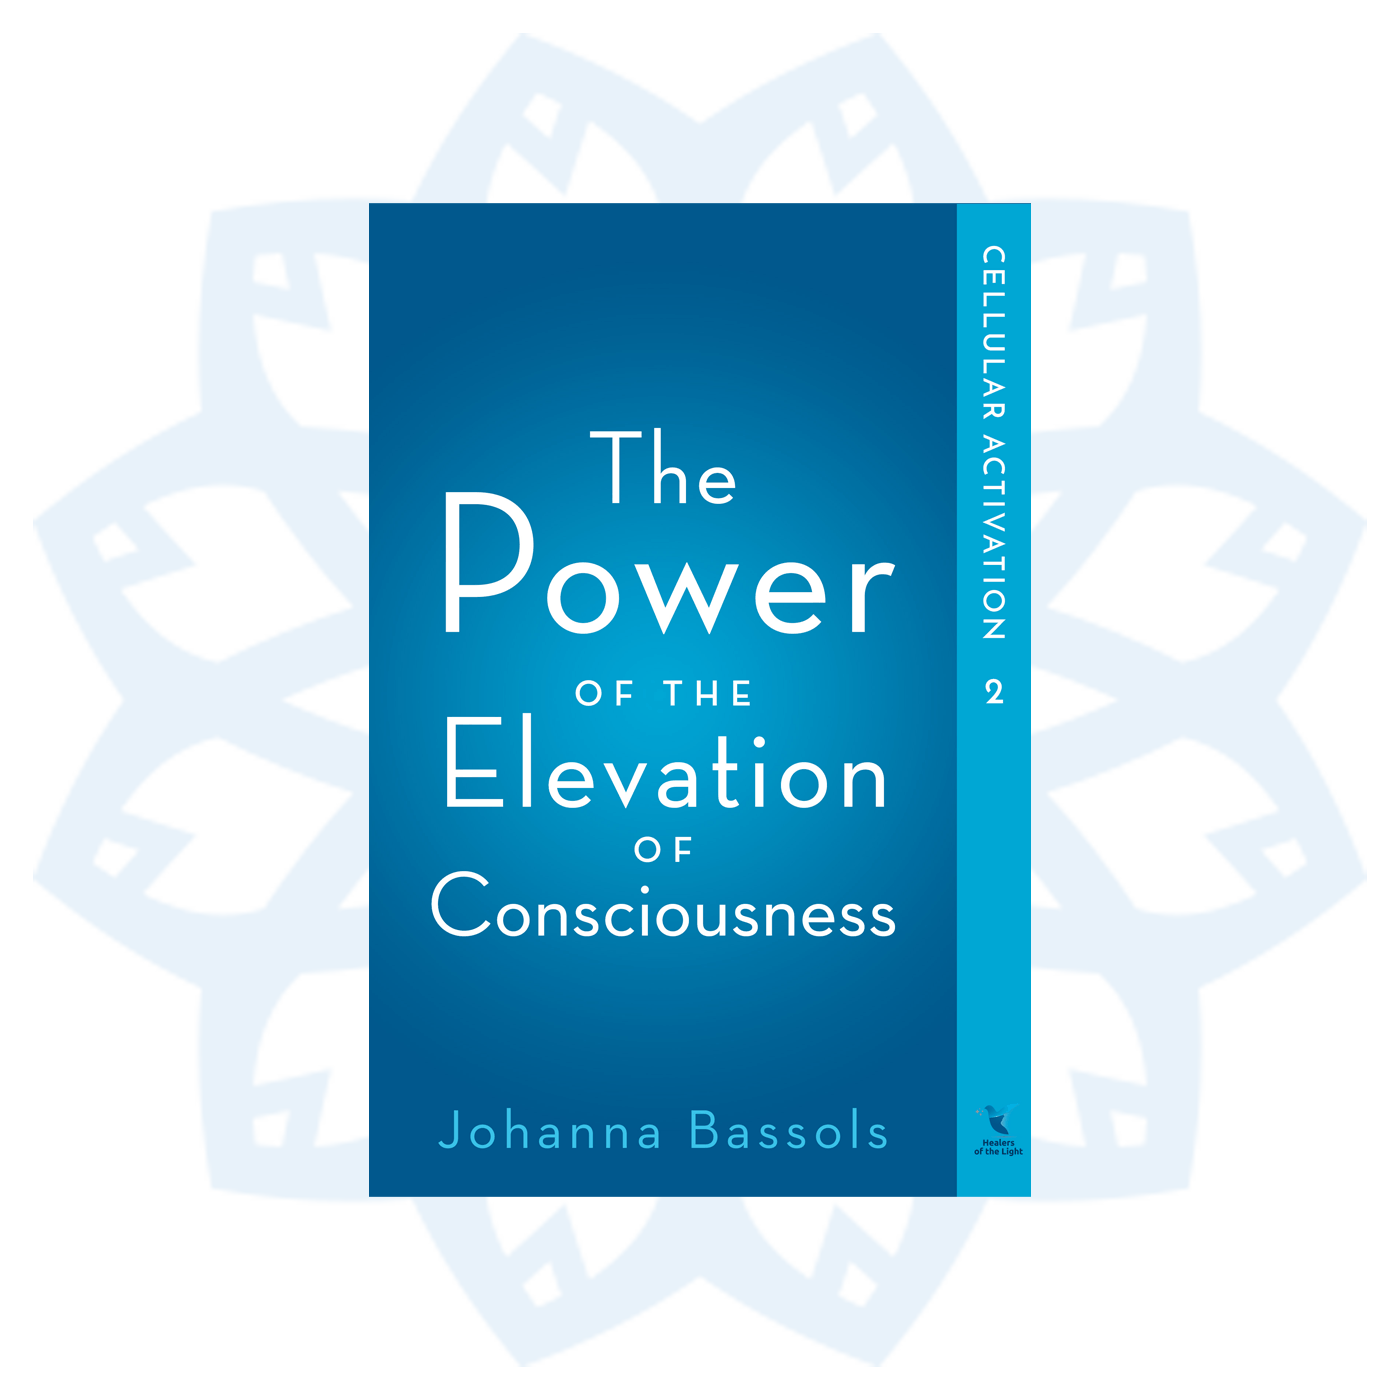 Trilogy Hardcover: The Power of the Elevation of Consciousness